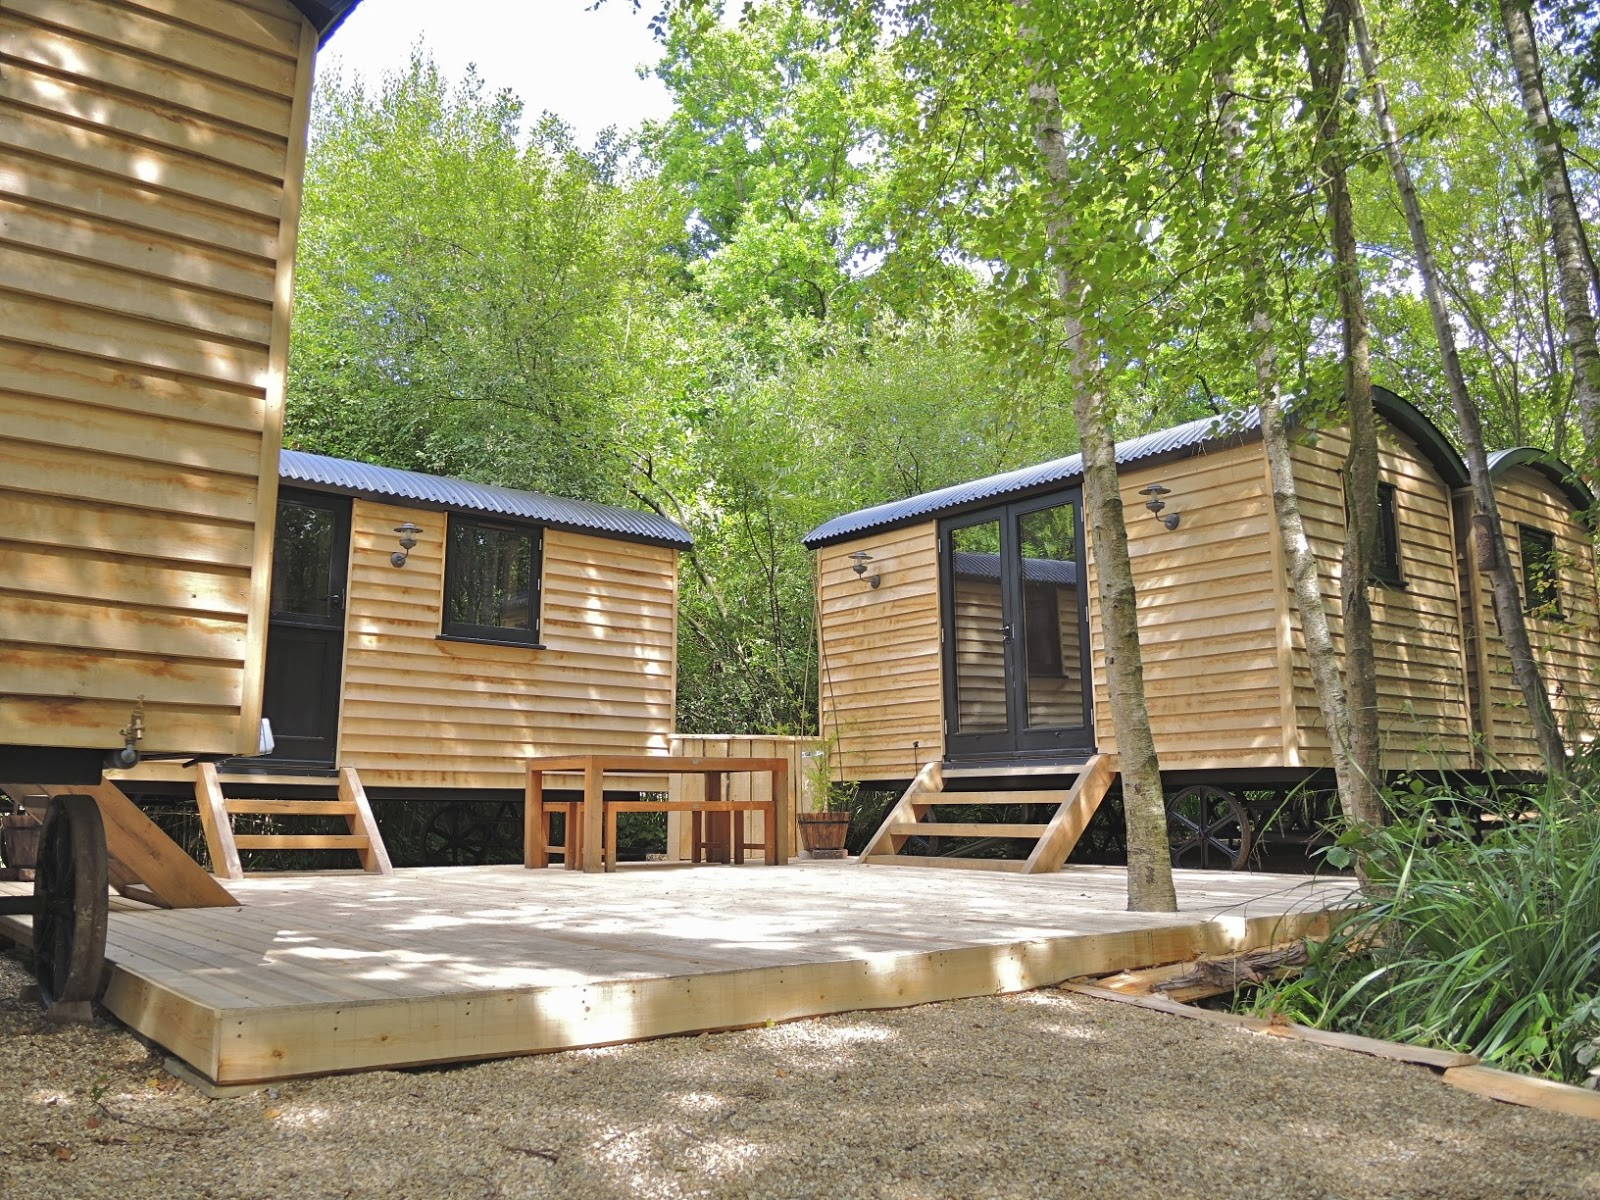 Shedworking: Global surge for shepherds\' huts